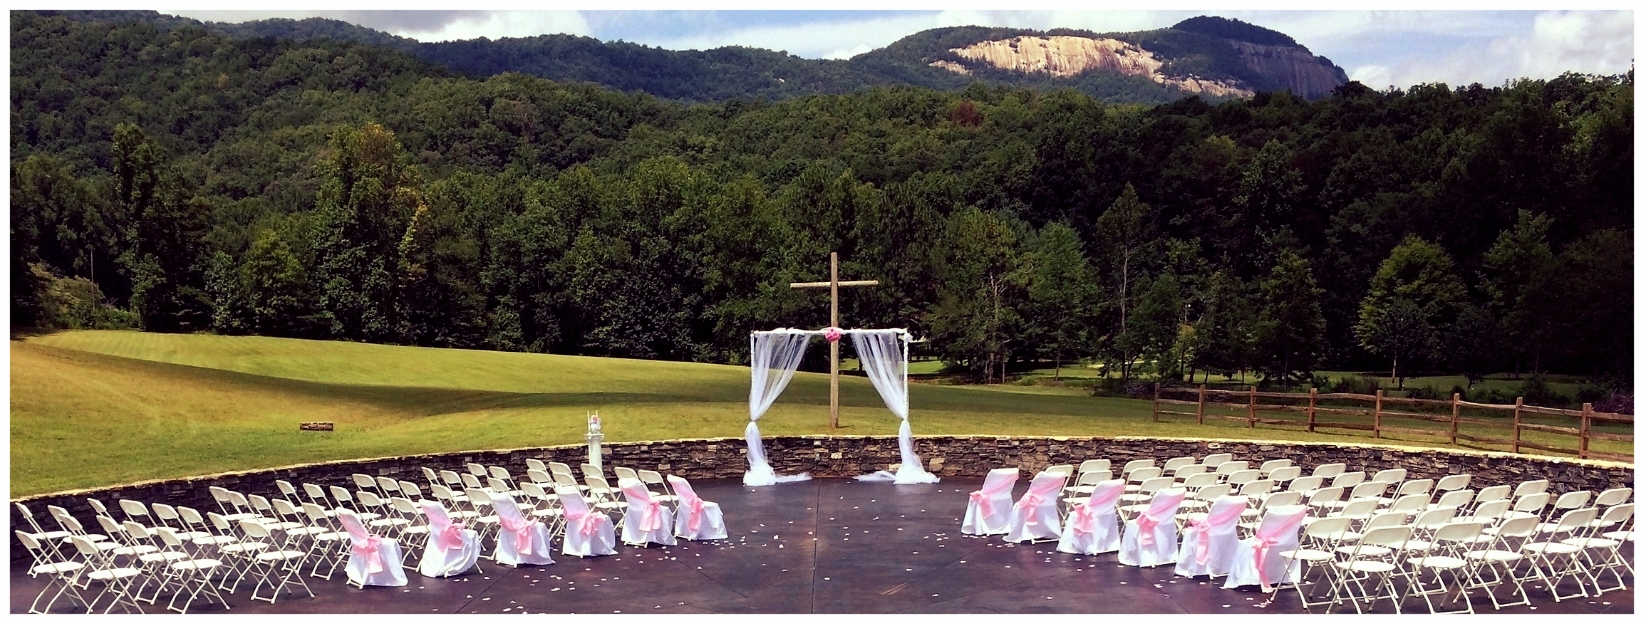 THE MEADOW - The Meadow is the newest addition to TRRCC! Designed to face Table Rock Mountain, the Meadow is the perfect location for outdoor weddings, memorial services, concerts, etc..Rental Cost: $600